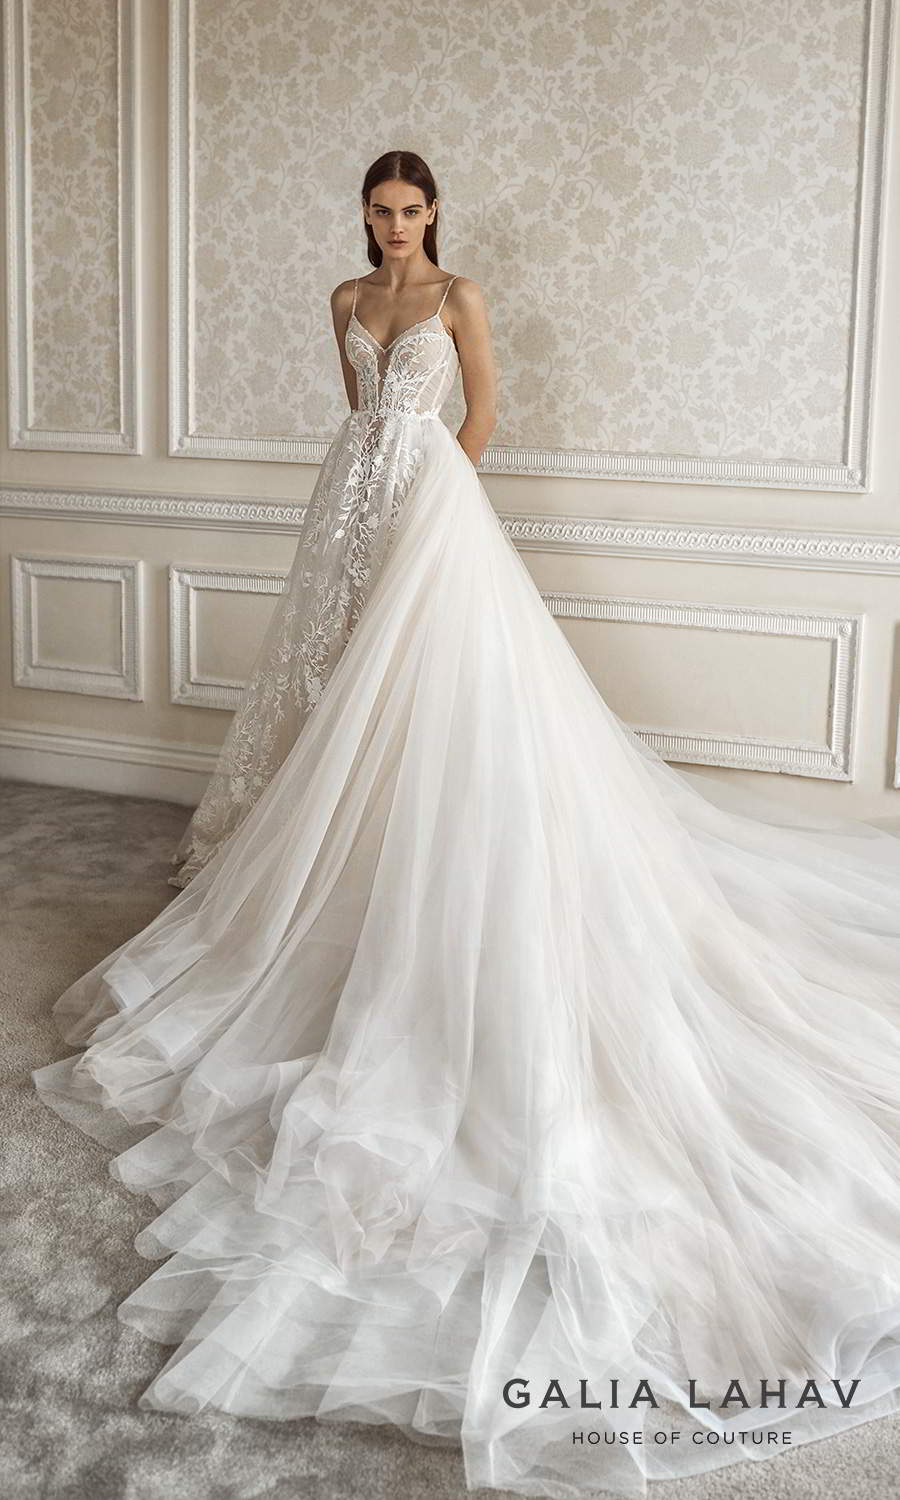 galia lahav fall 2021 bridal couture sleeveless beaded thin straps v sweetheart neckline fully embellished lace a line ball gown wedding dress chapel train cathedral overskirt (pavlova) bv